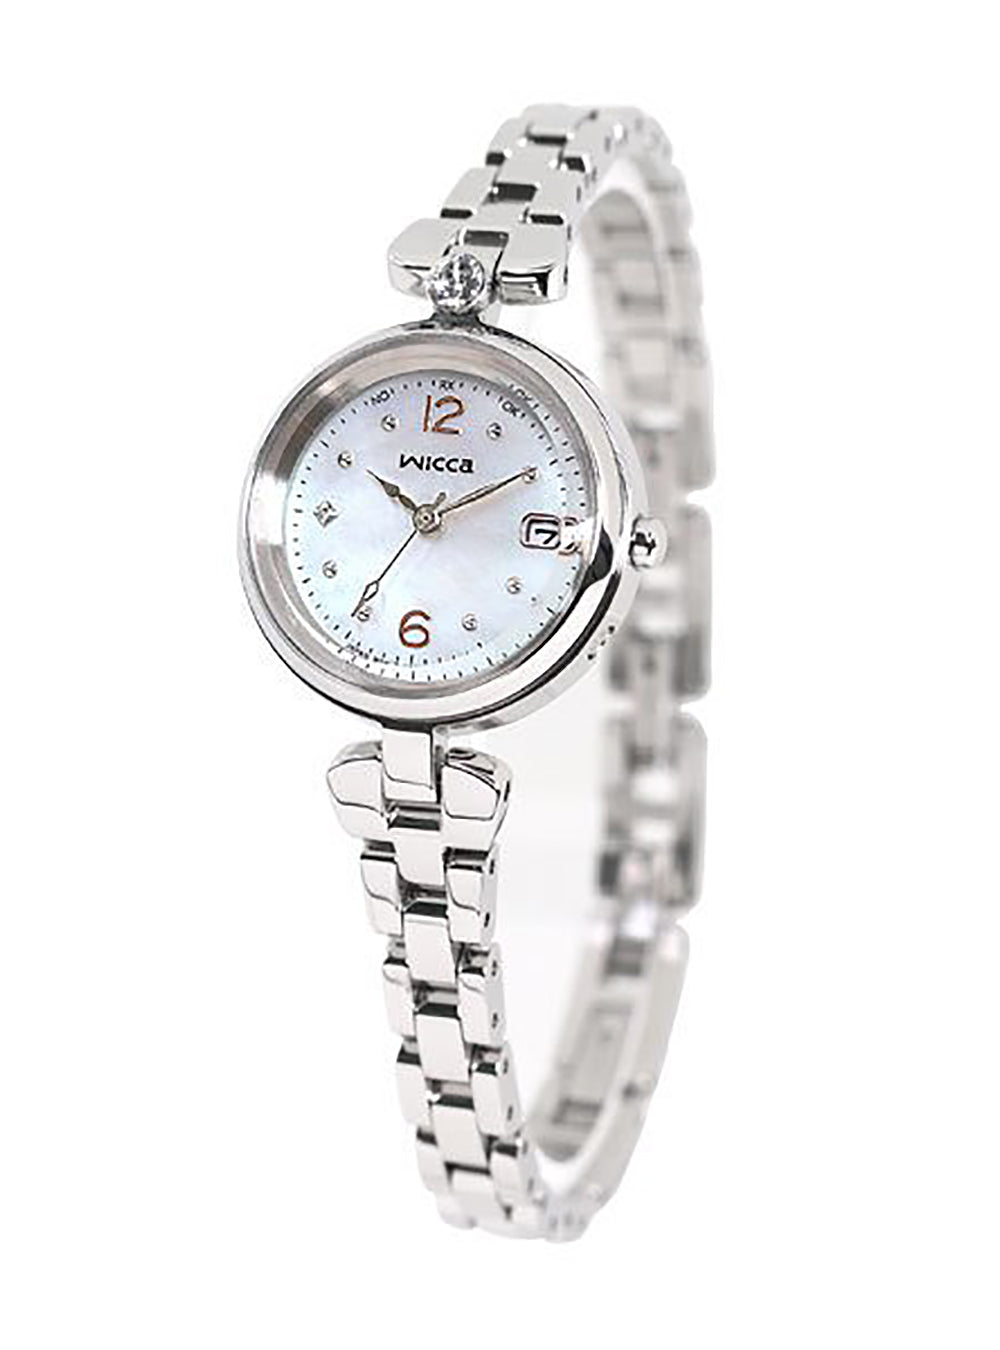 CITIZEN WICCA TIARA STAR COLLECTION KS1-619-91 JDM